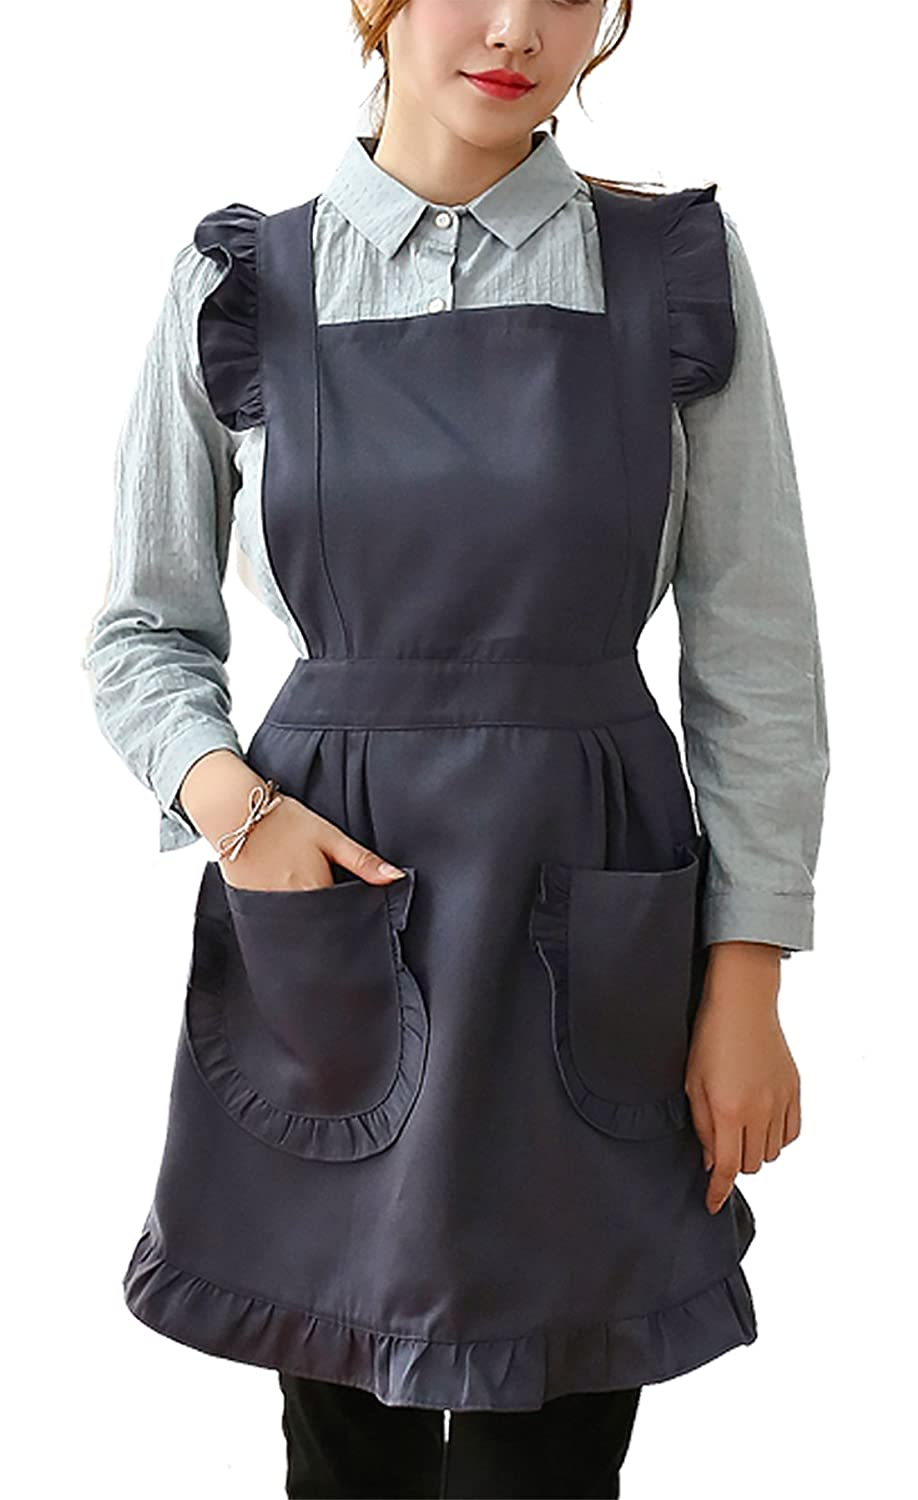 FEOYA Women Cooking Apron Waterproof Fashionable Breathable Dirt Proof Apron for Kitchen Restaurant Gardening - Black